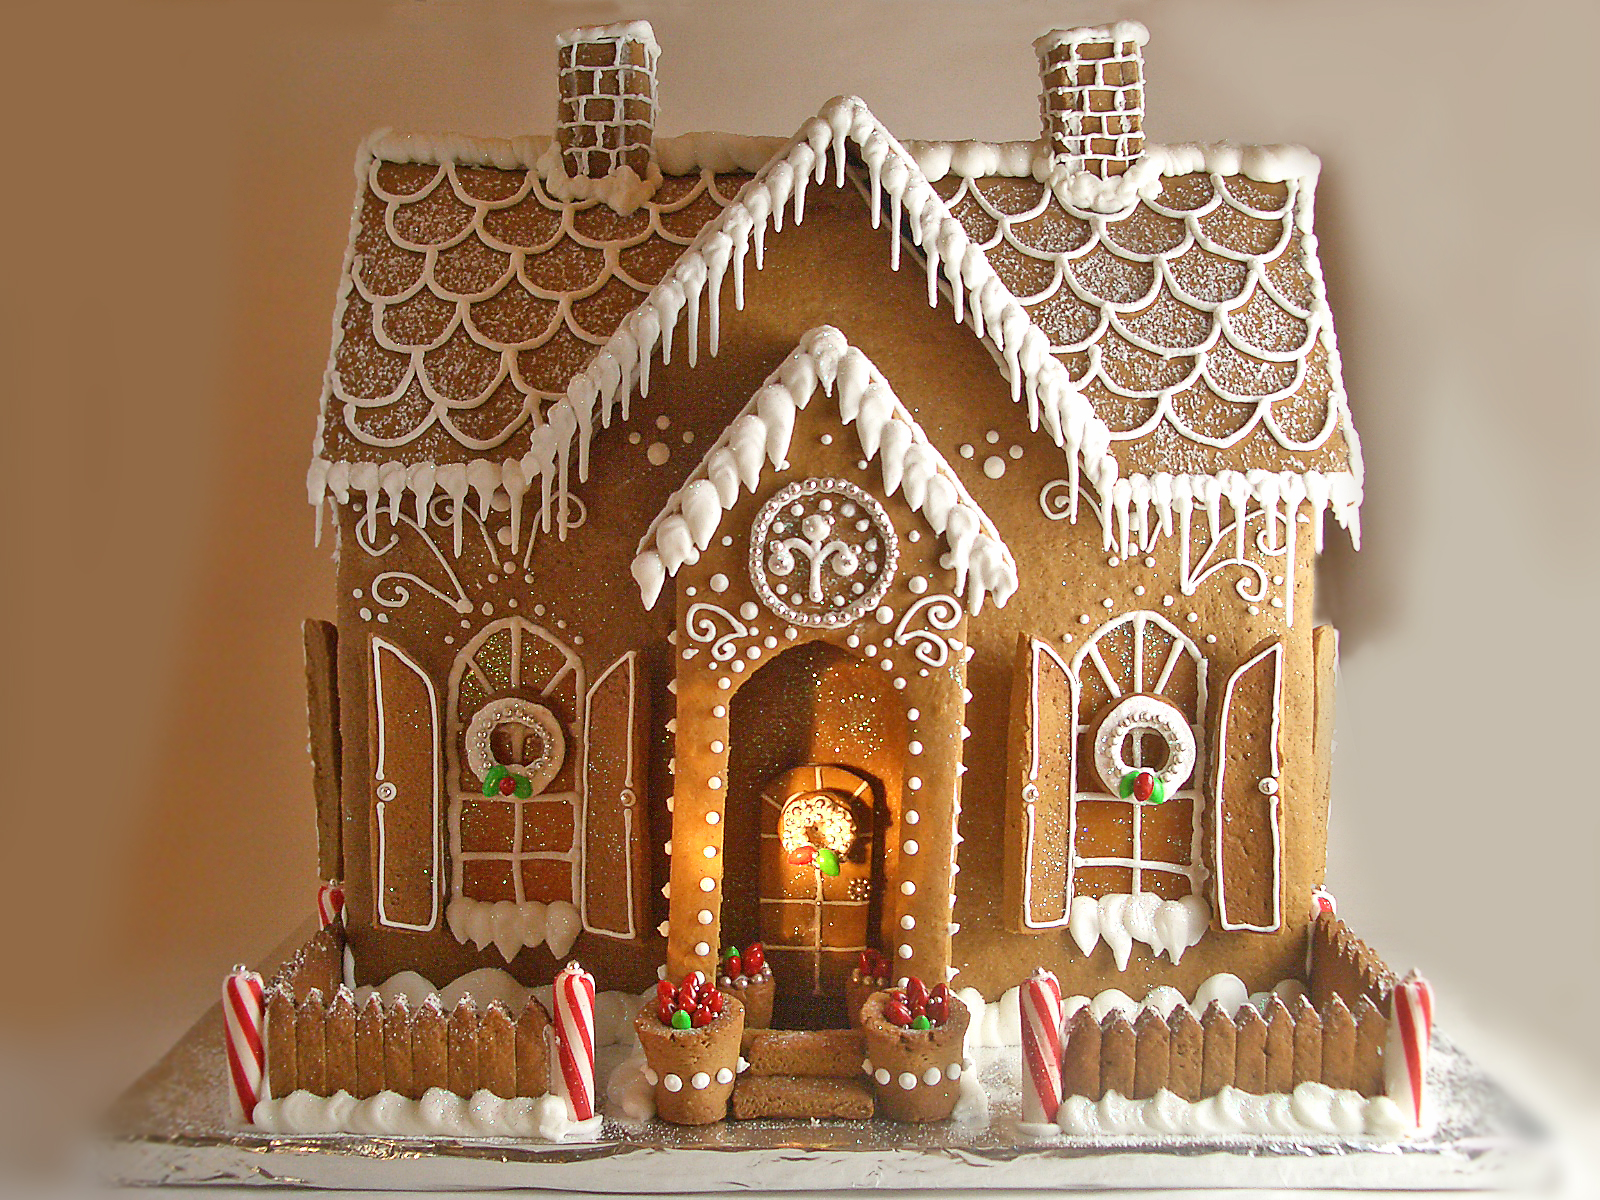 Gingerbread House 2010 Happy Holidays Goodies By Anna